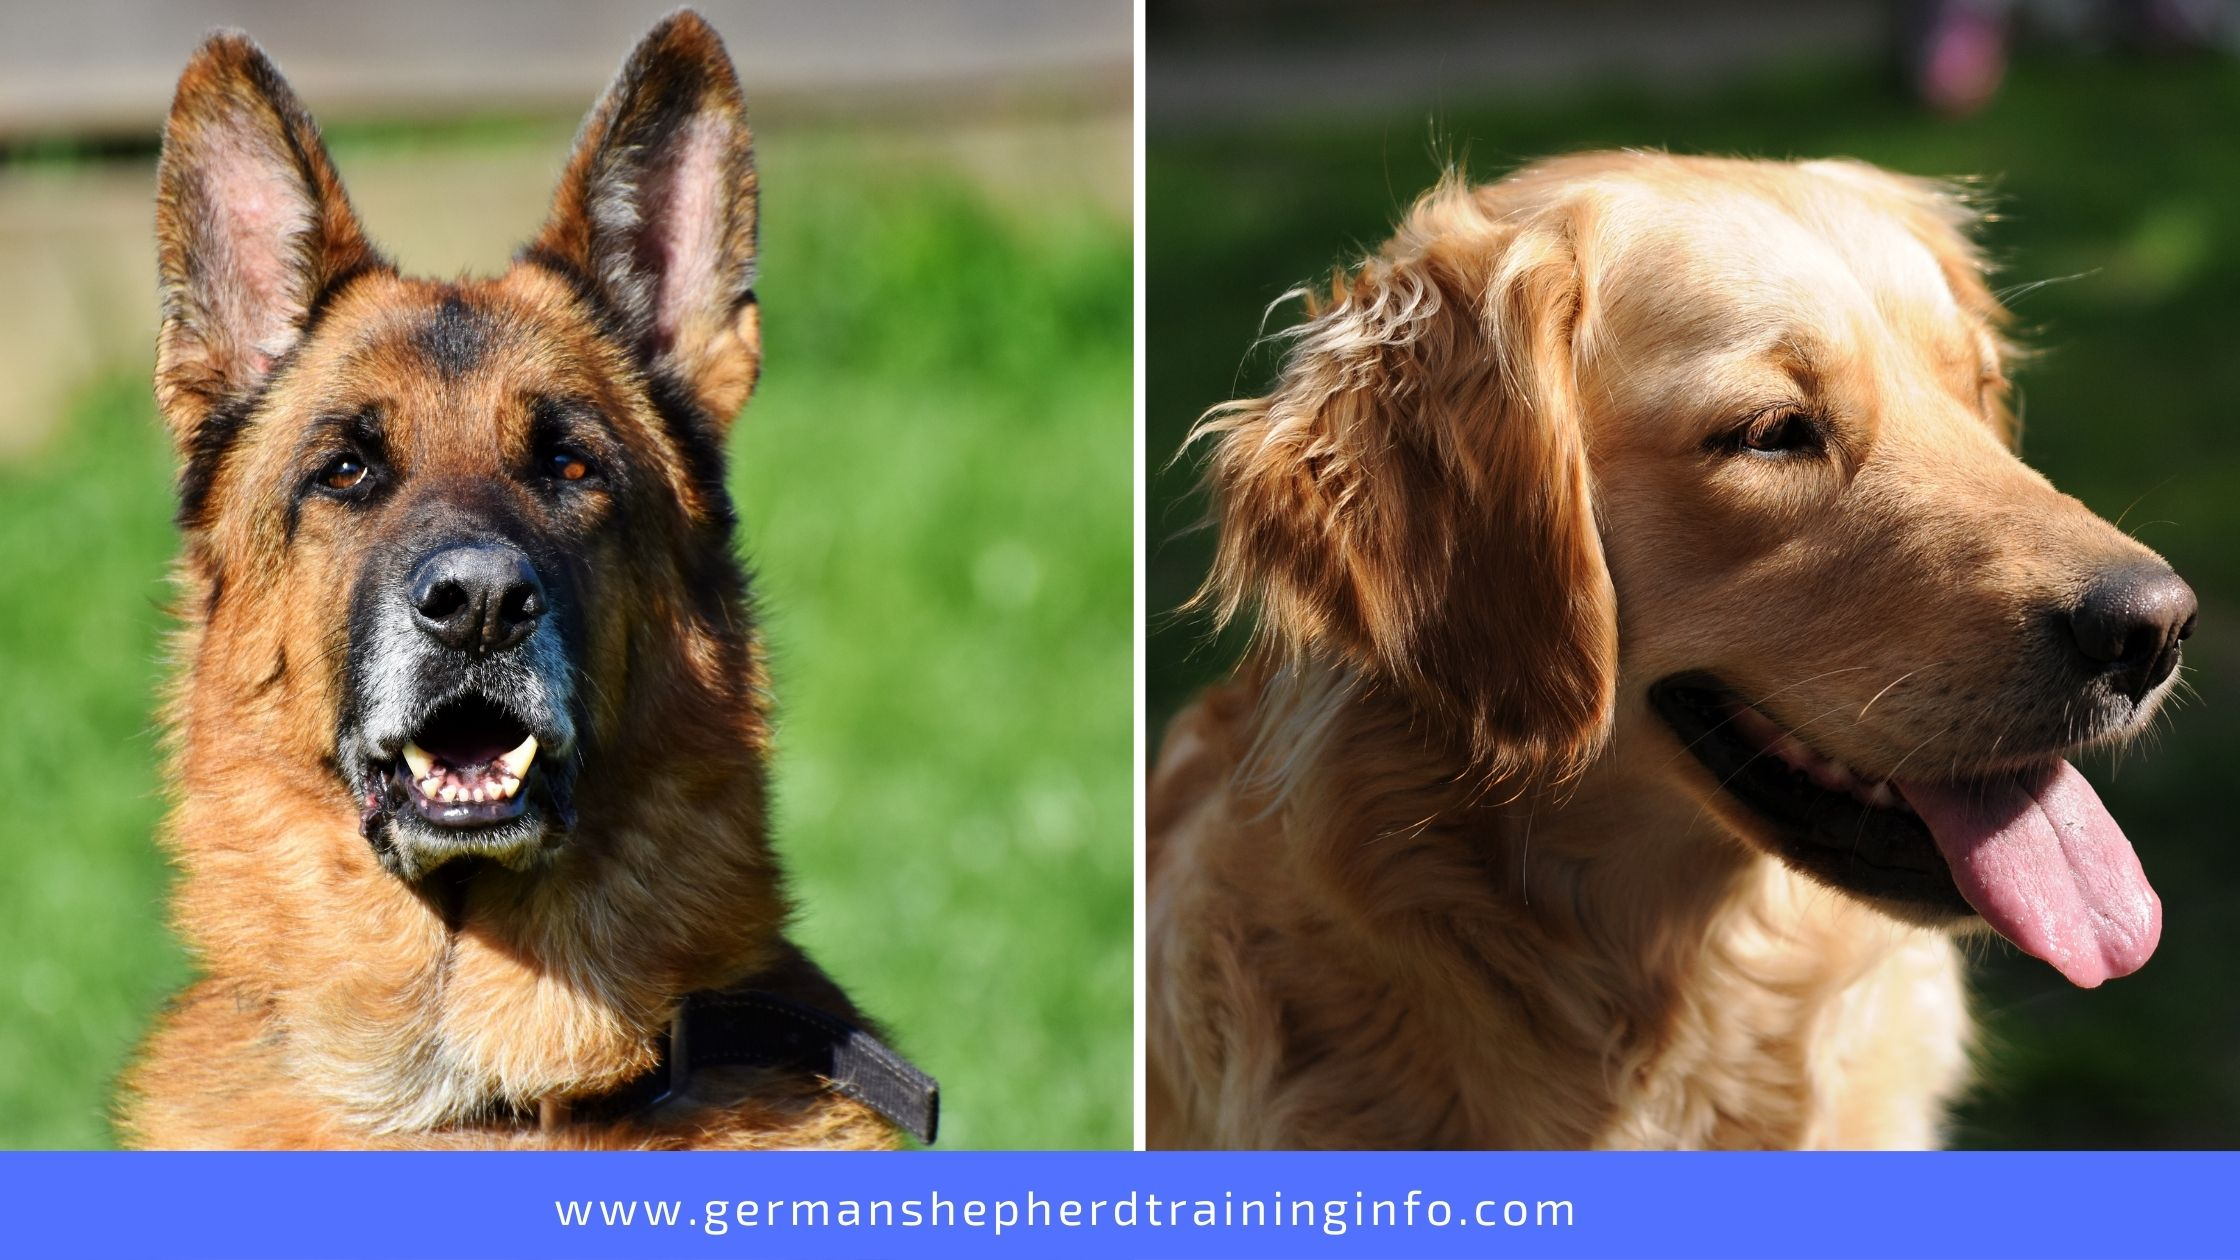 Everything you need to know about Golden German Shepherd - 'THE GOLDEN SHEPHERD'